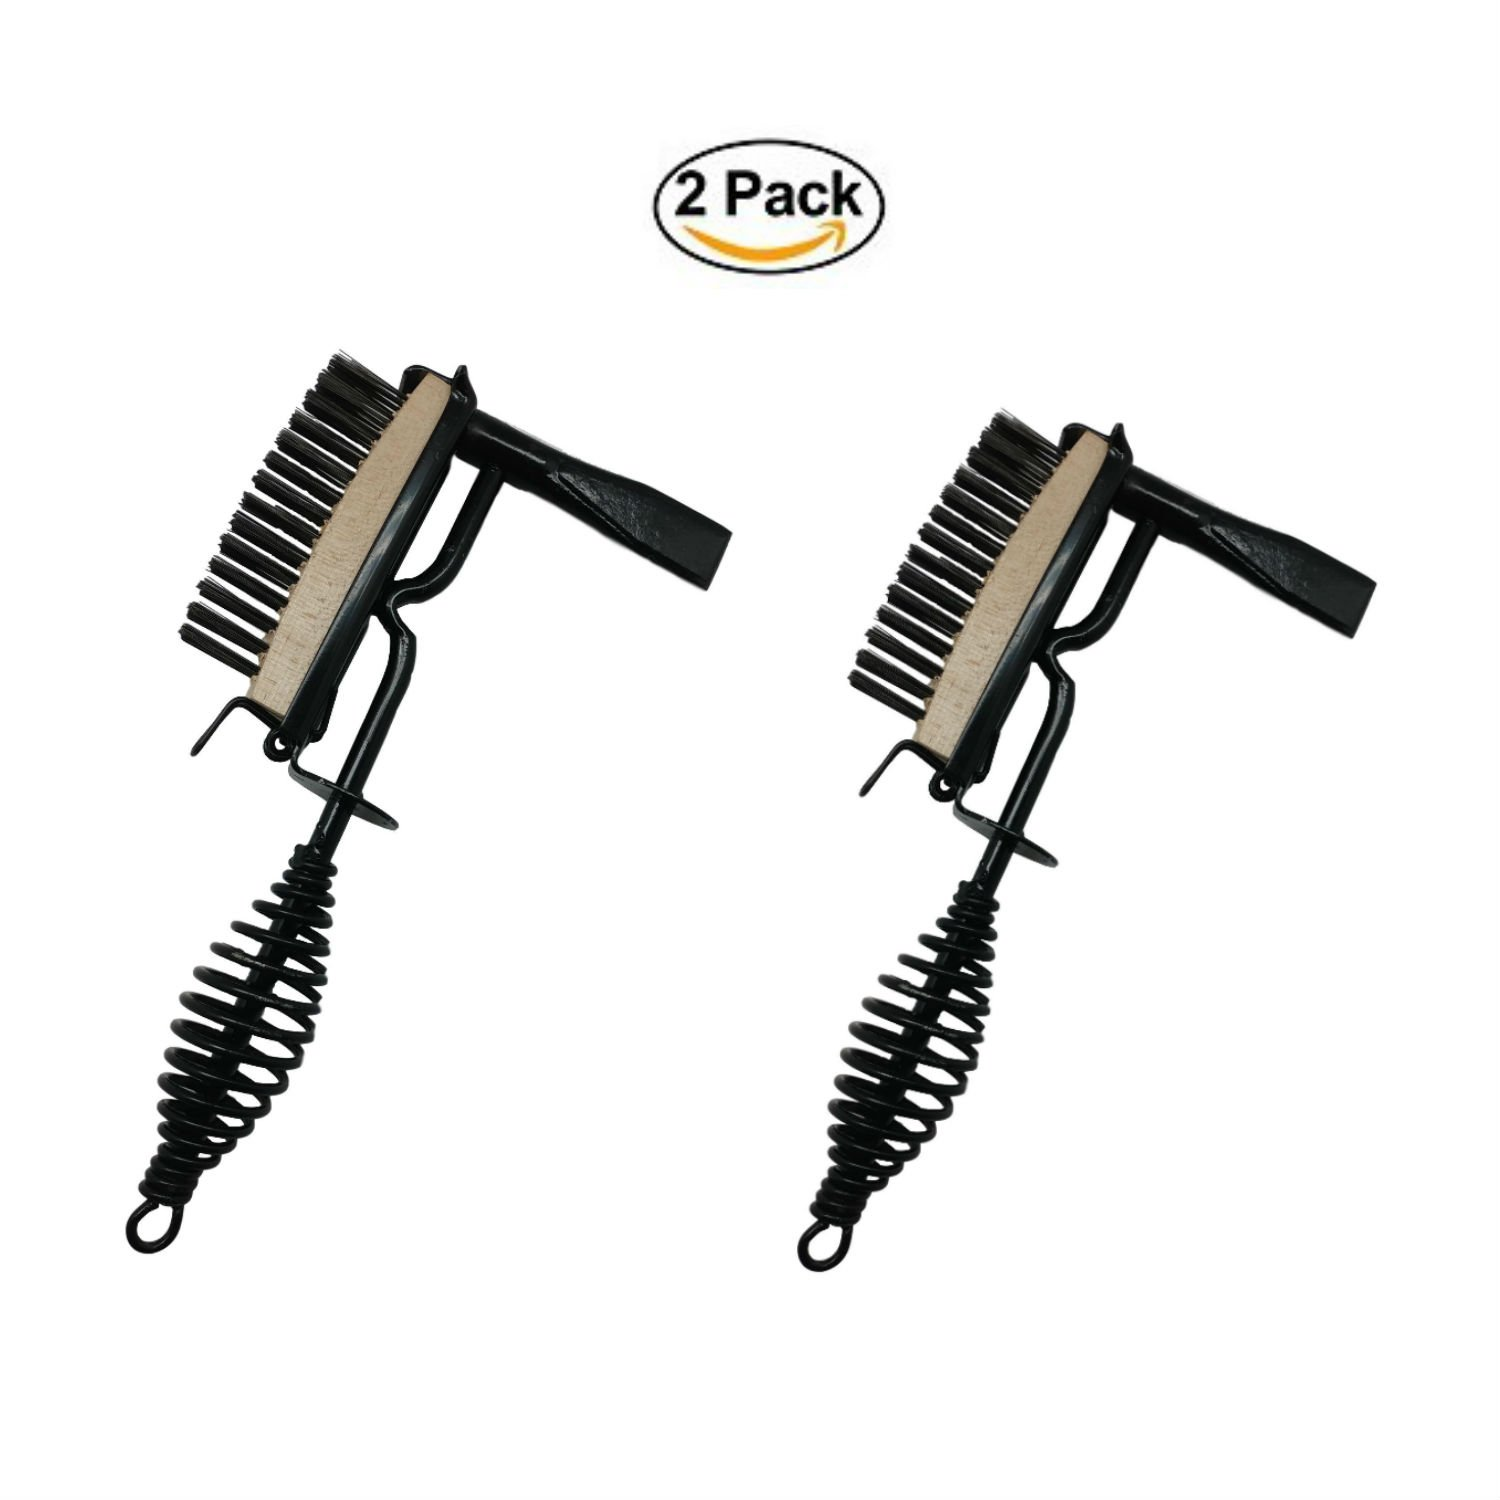 Timco Tools Welding Chipping Hammer and Brush, Set of 2 | Welding Tool with Welding Wire Brush